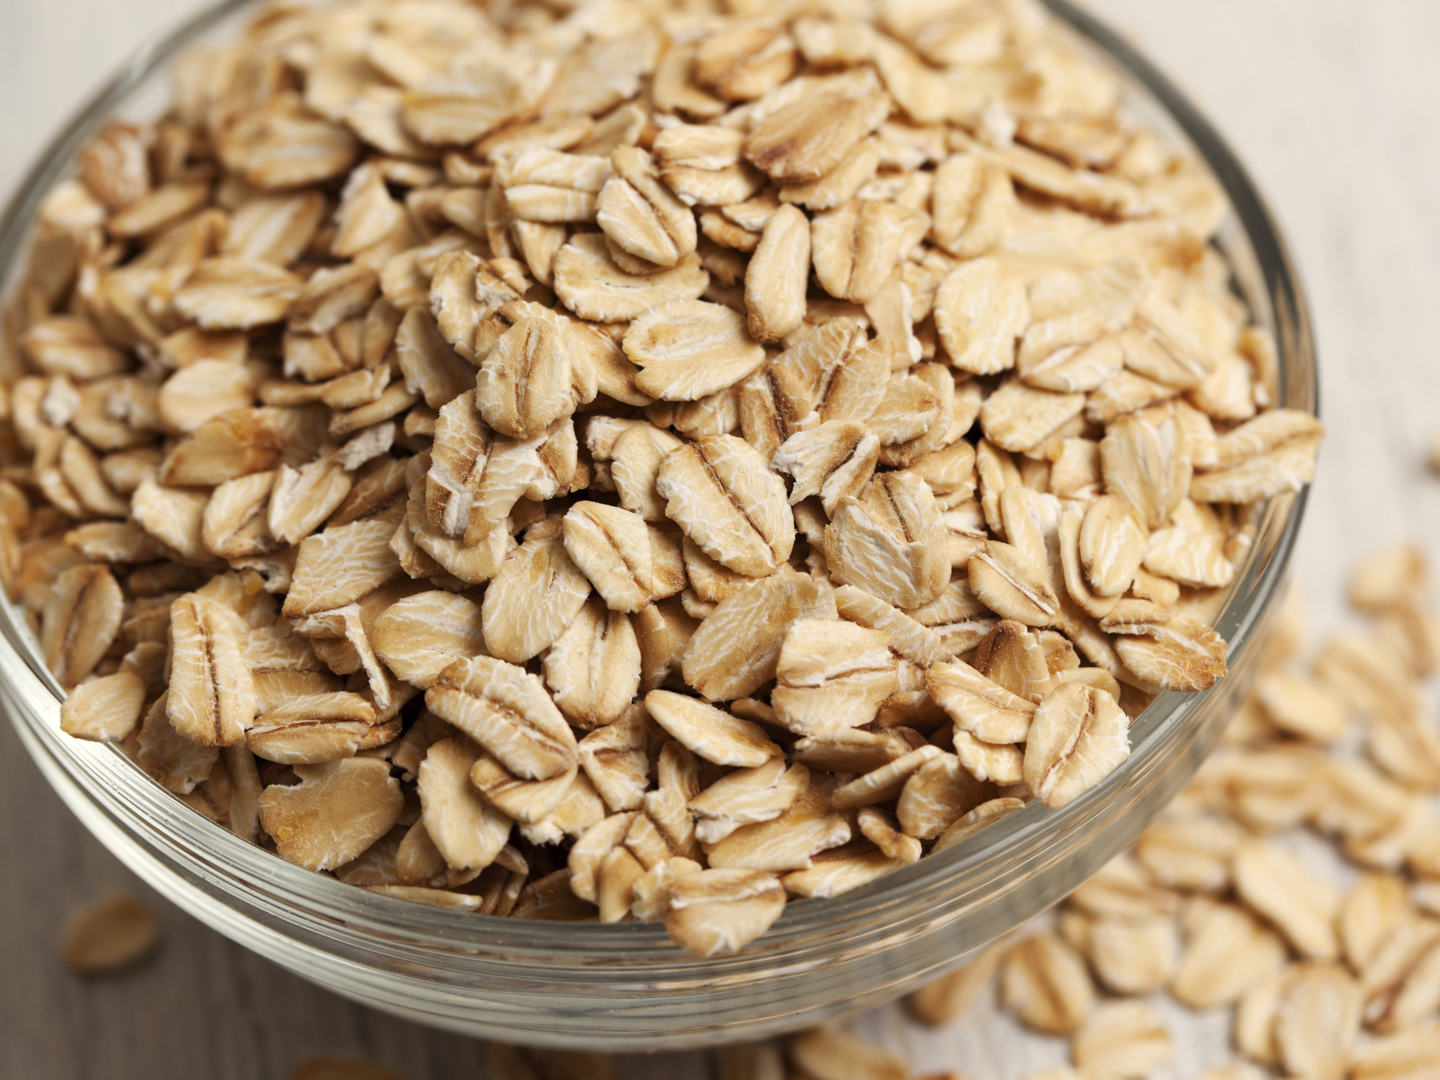 Oats for cooking